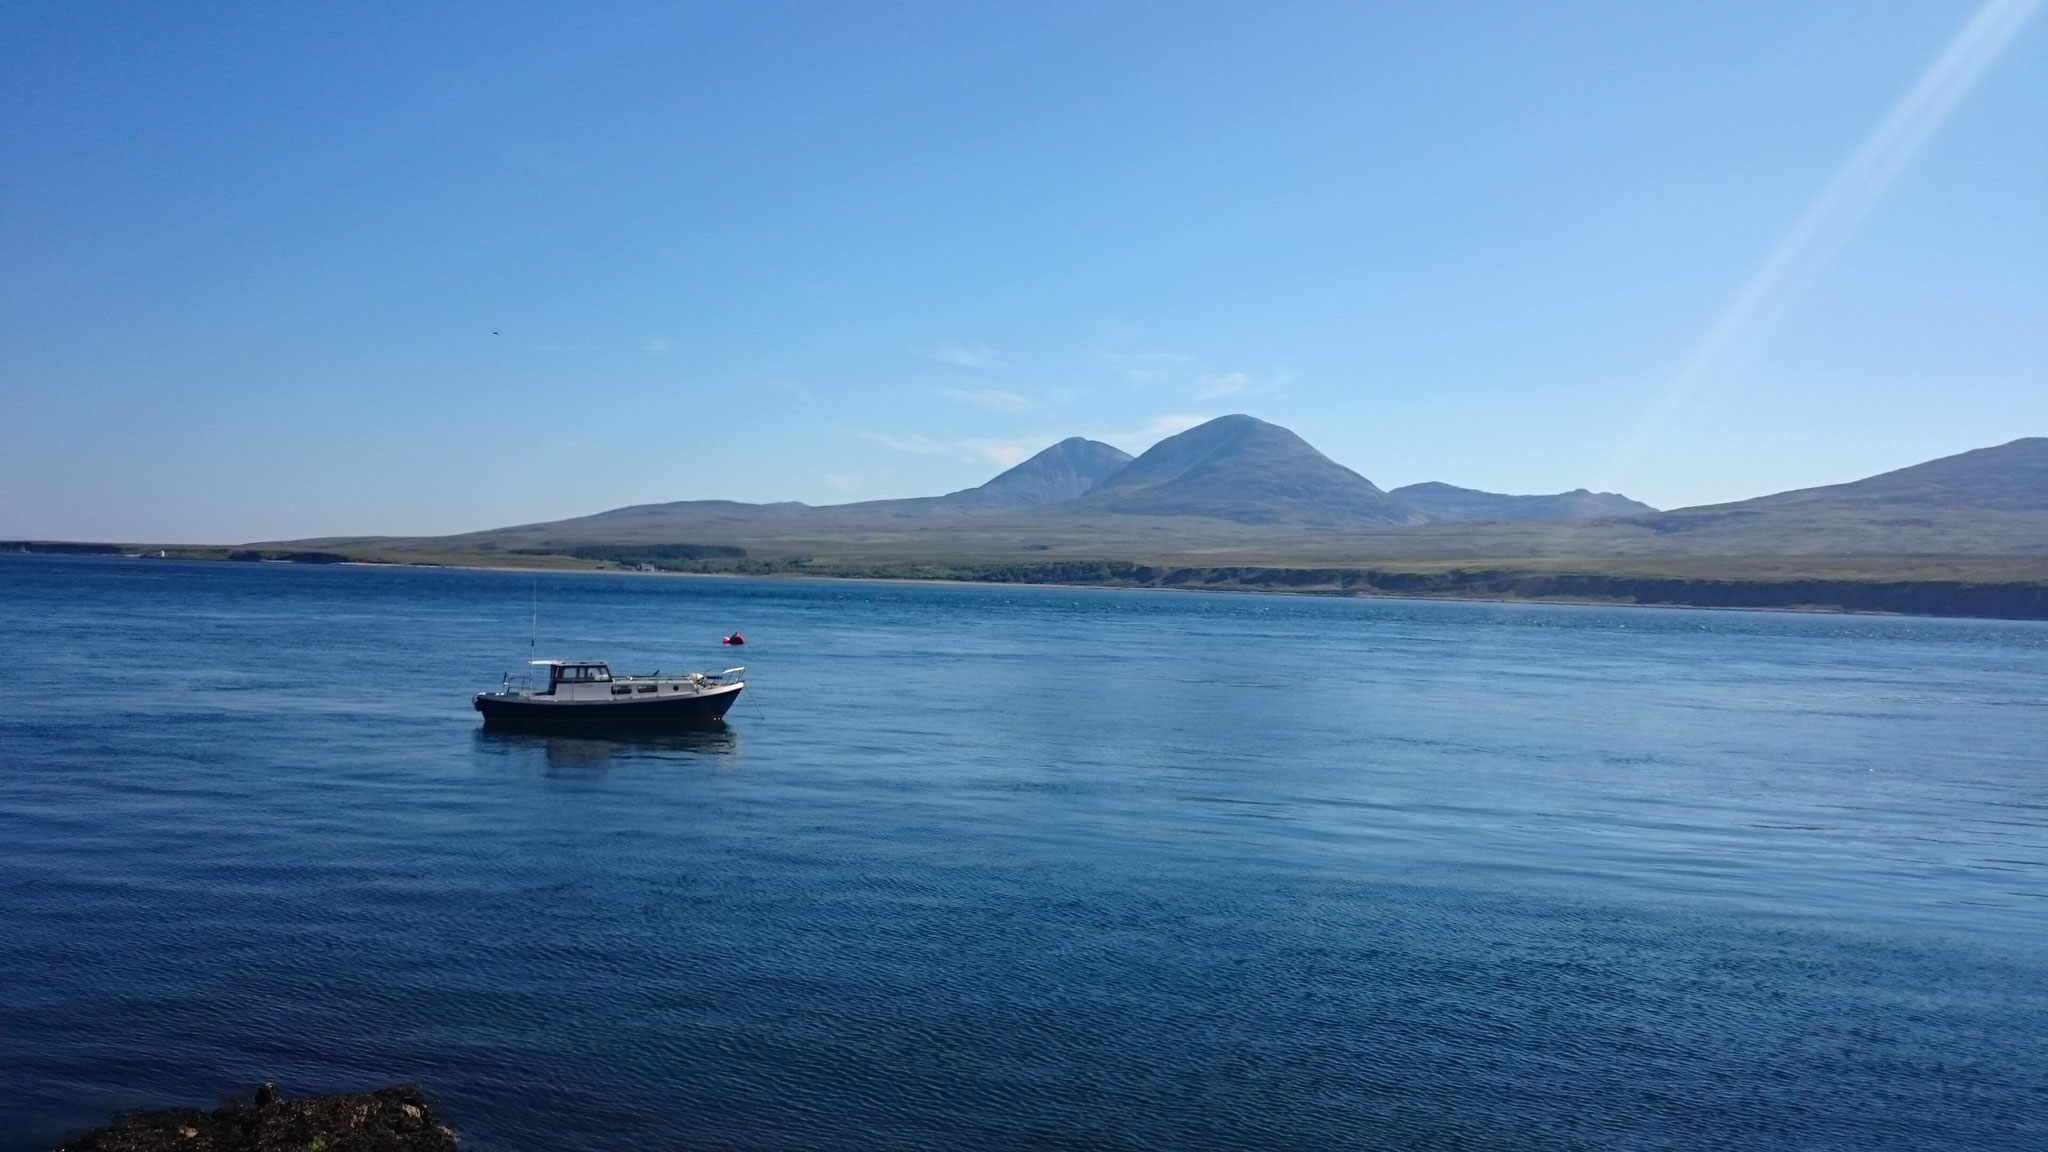 View from Caol Ila Distillery towards the Isle of Jura